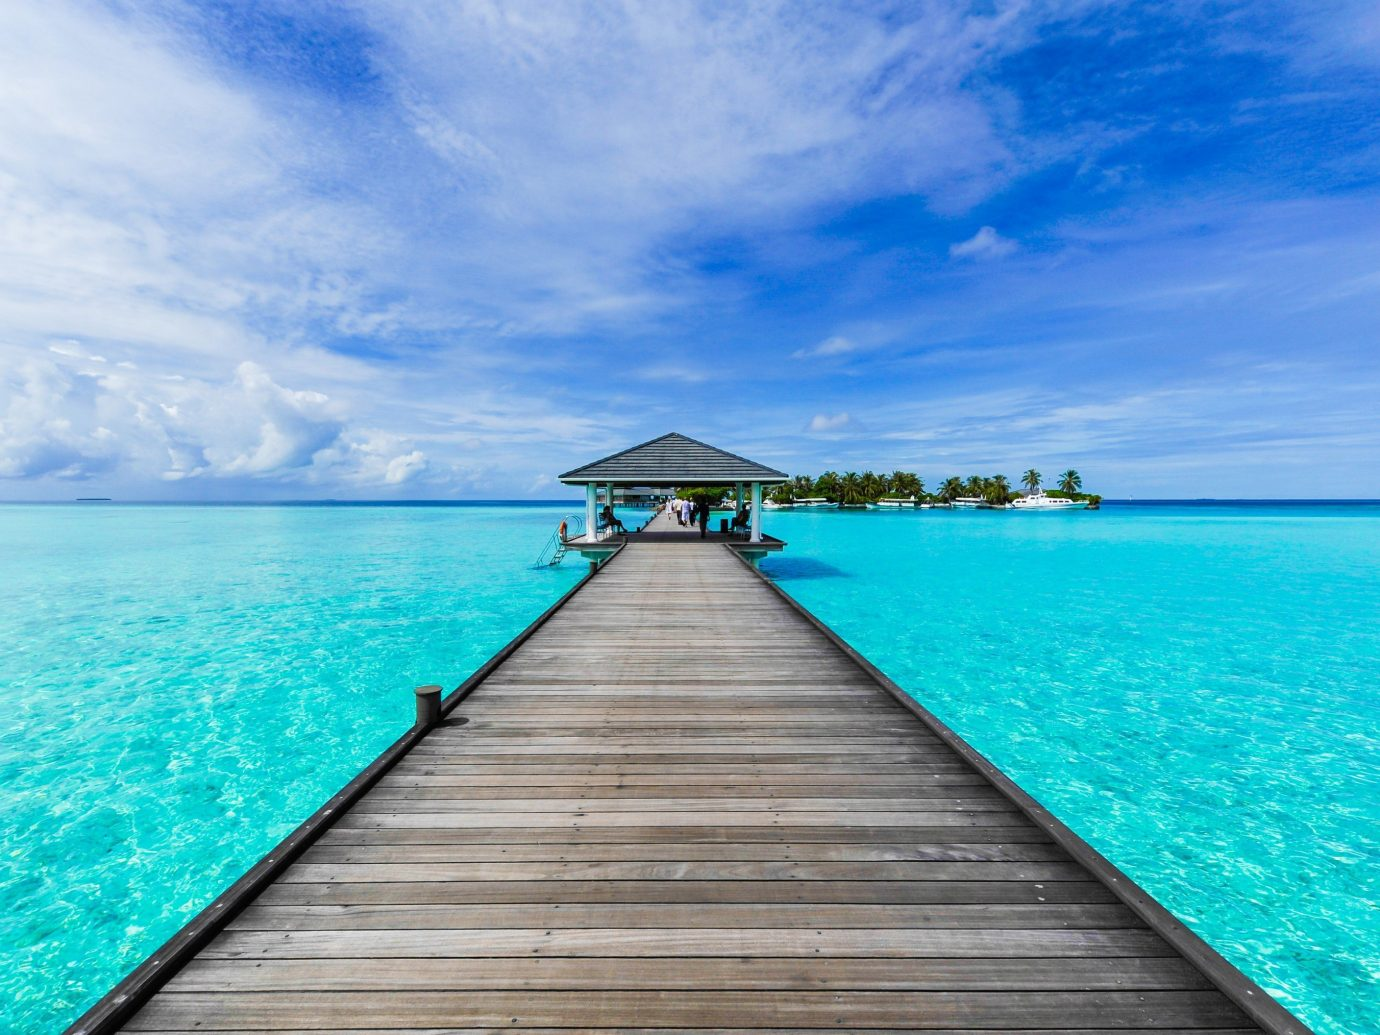 Offbeat water sky pier scene outdoor Boat wooden Sea blue horizon Ocean caribbean vacation shore Coast Beach bay Island dock Lagoon wood